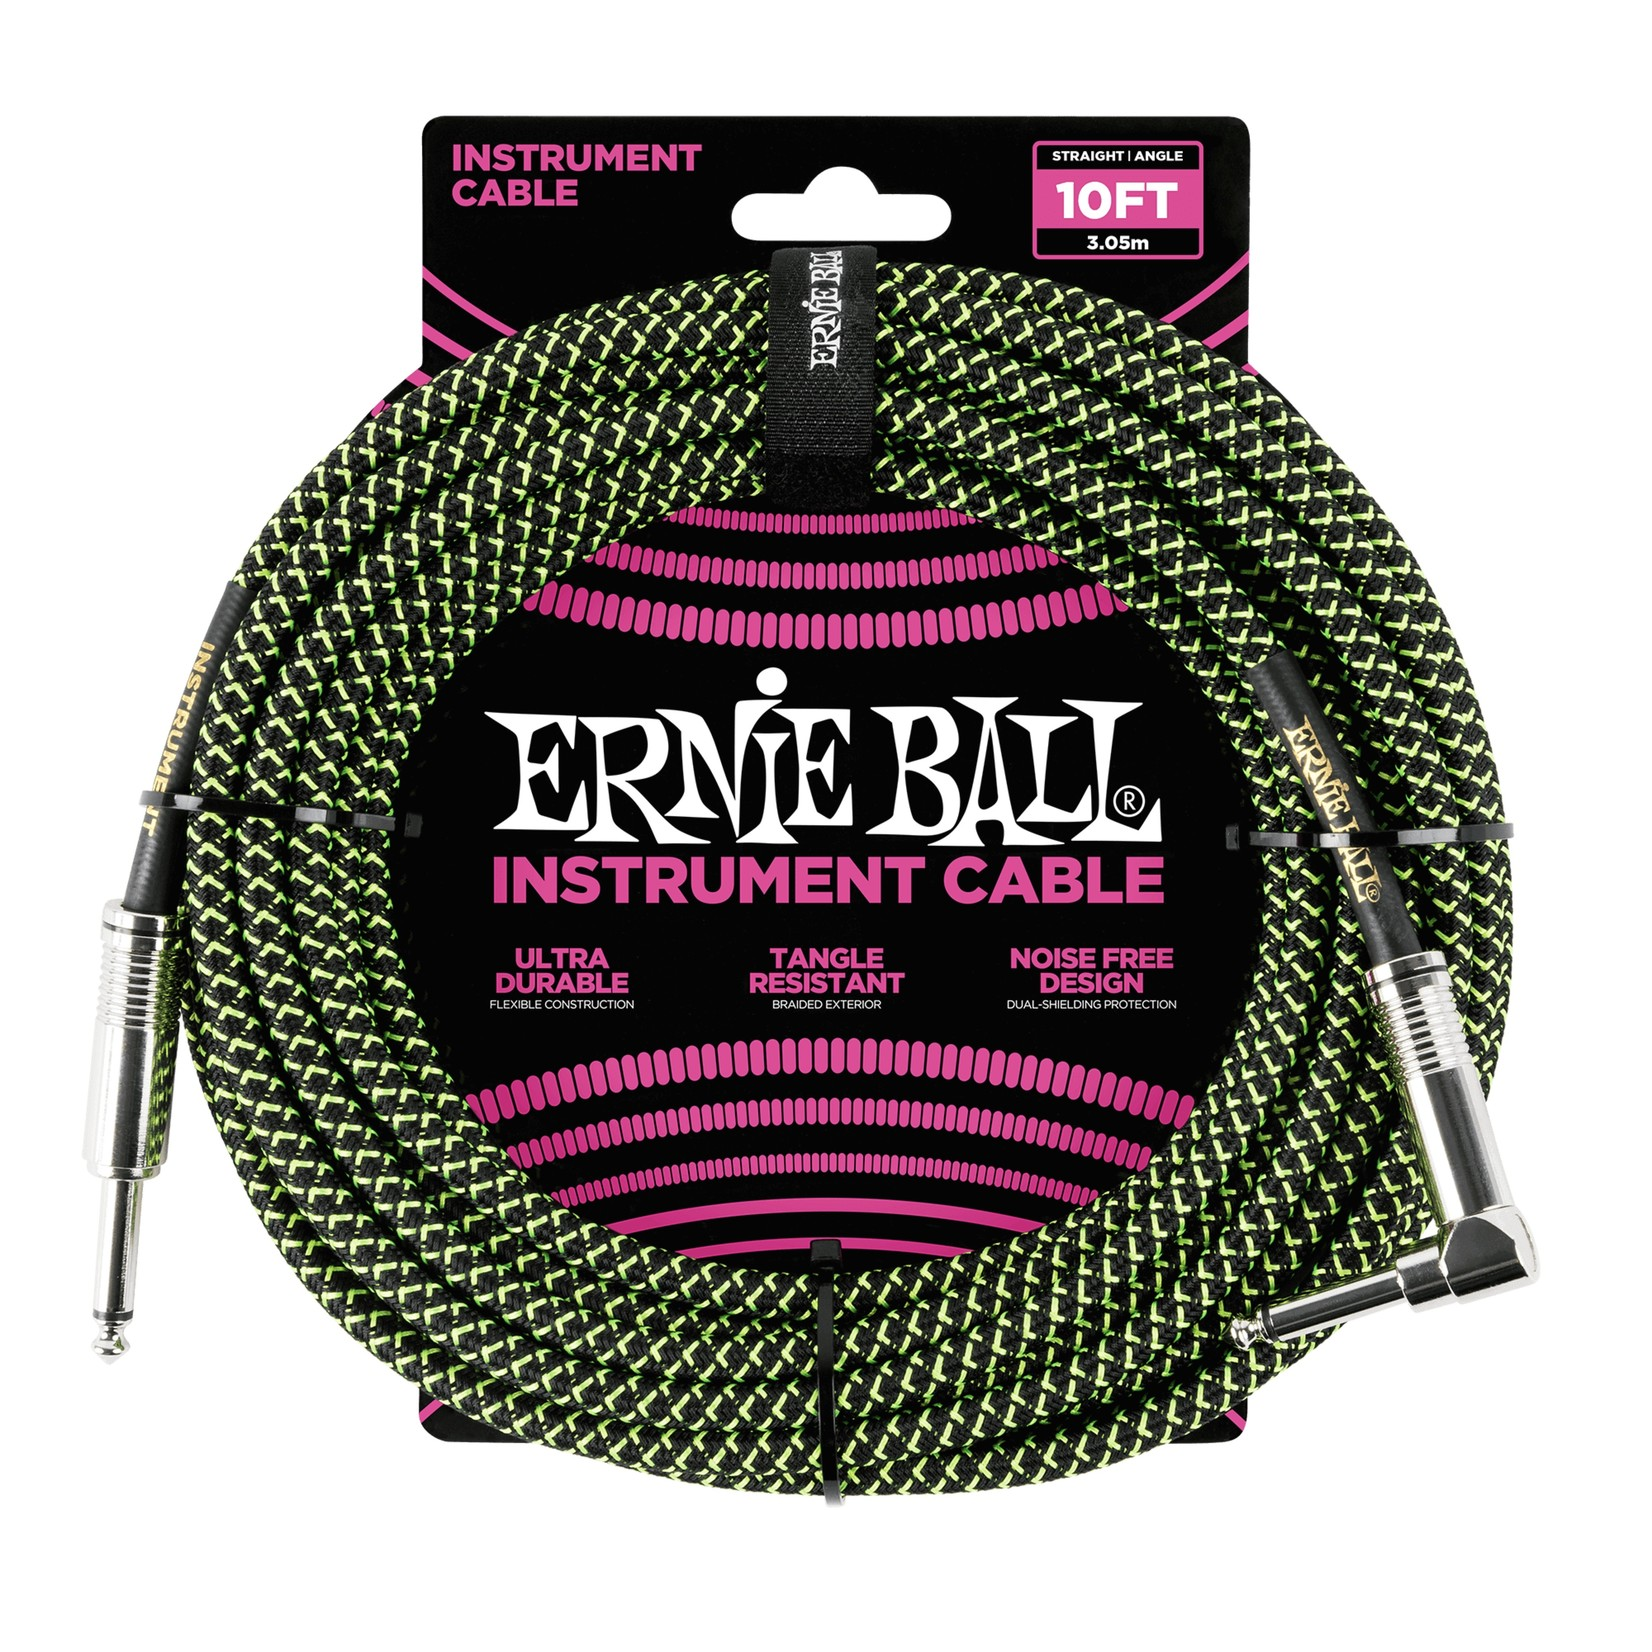 """Ernie Ball Ernie Ball 10' Braided 1/4"""" Straight / Angle Instrument Cable - Black/Green (10-foot)"""